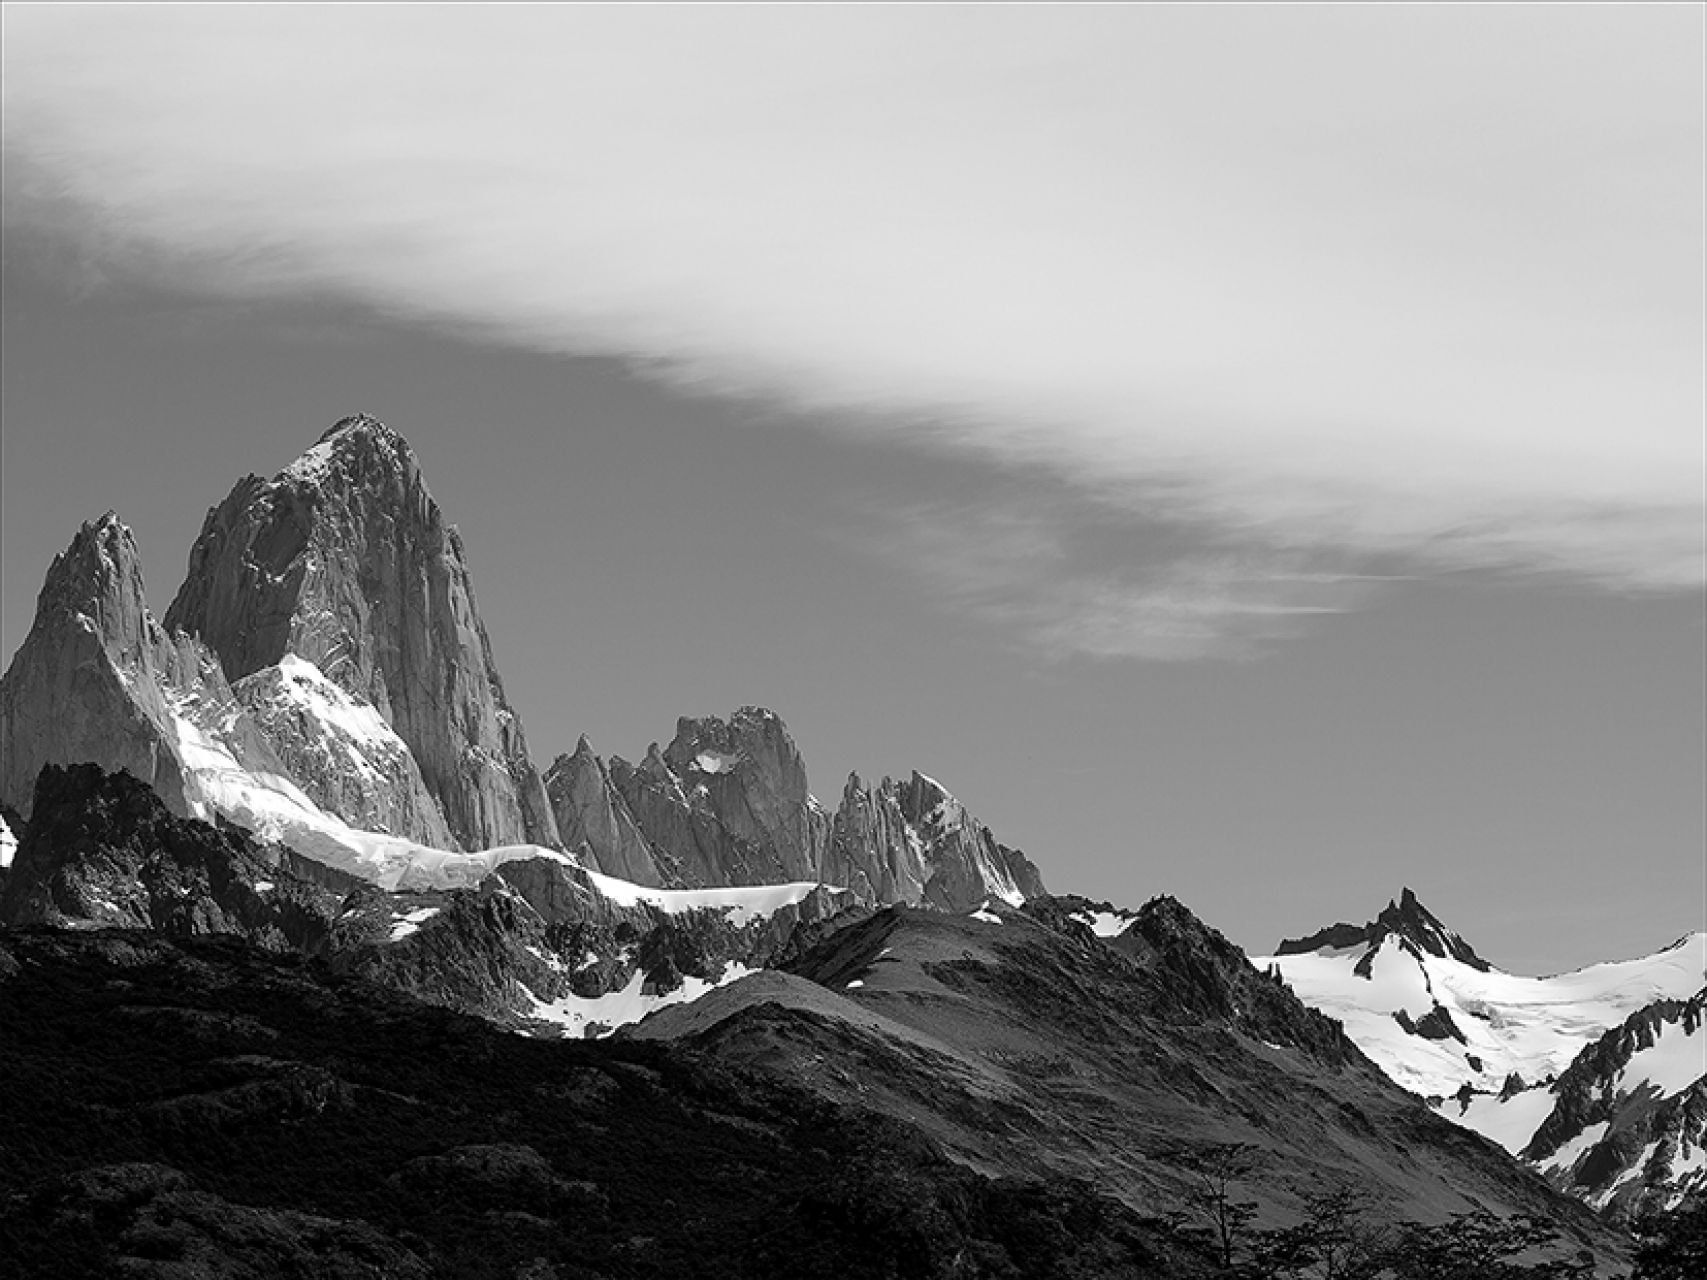 Mt. Fitz Roy with Cloud (67 x 110)